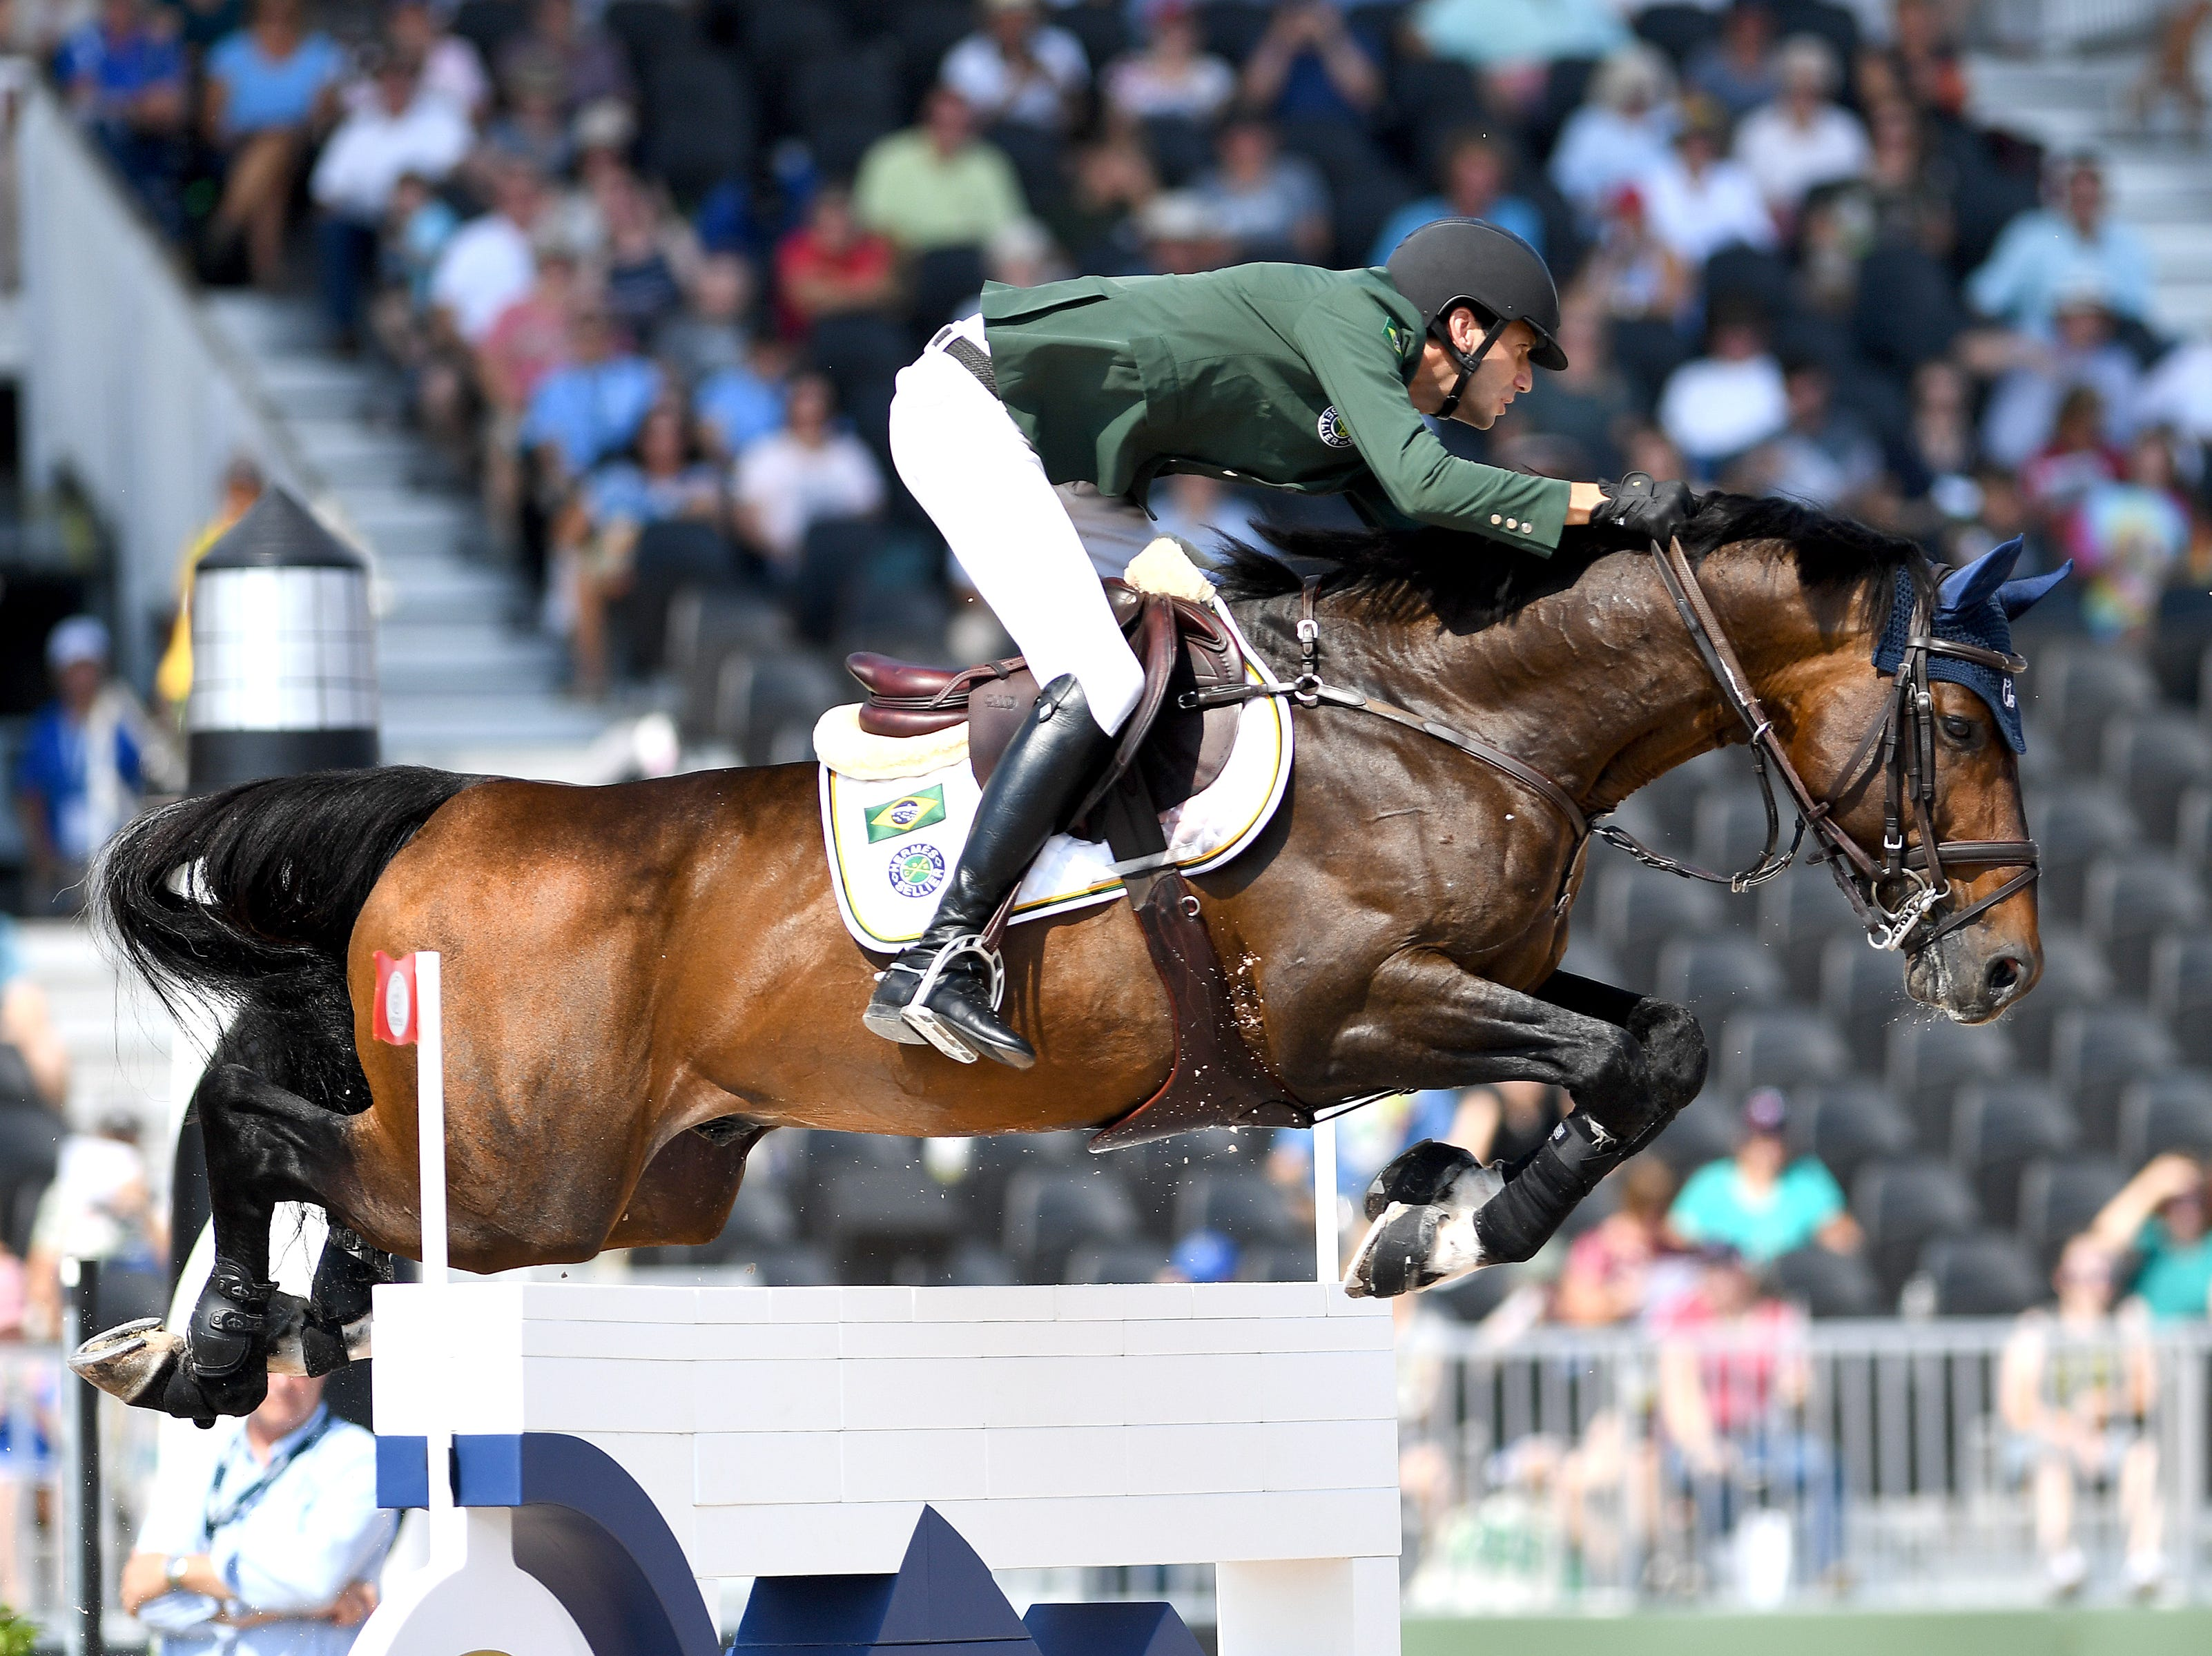 Brazil's Pedro Junqueira Muylaert, on Prince Royal Z MFS, competes in the team jumping competition of the FEI World Equestrian Games at the Tryon International Equestrian Center on Sept. 20, 2018.